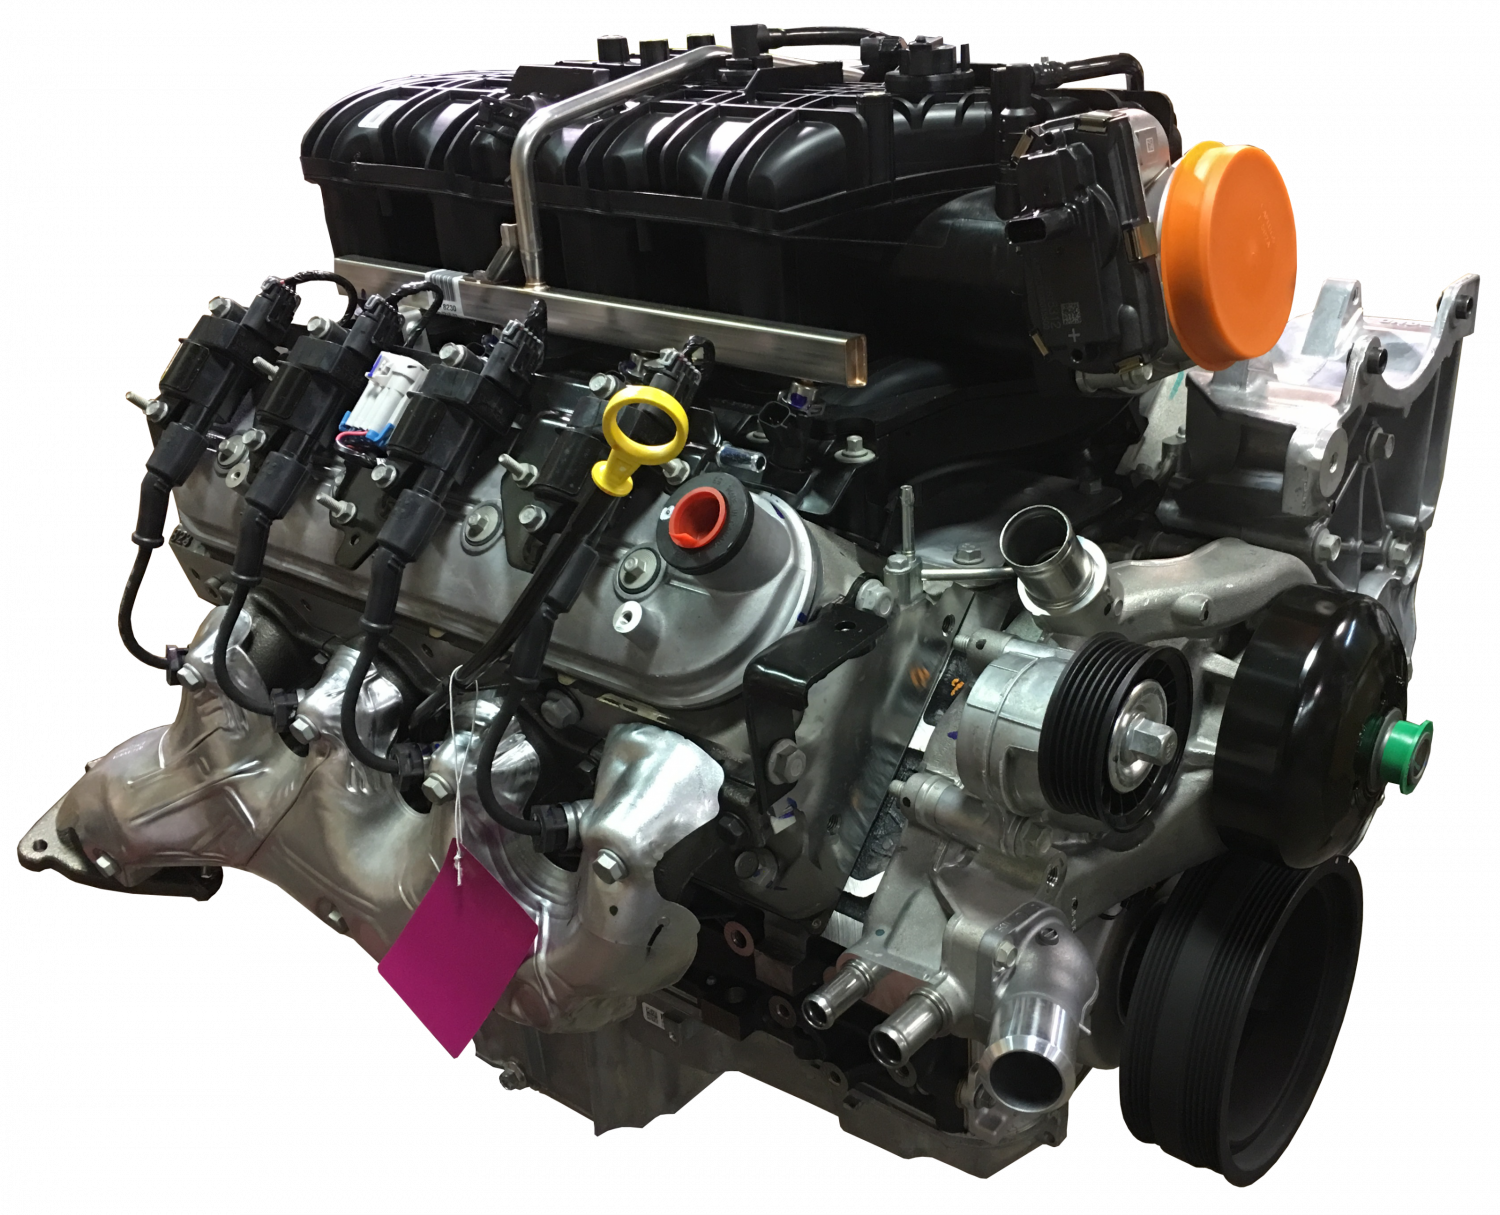 All Chevy 6.0 chevy engine : 12677741 - L96 6.0L 360HP Gen IV CPP Crate Engine